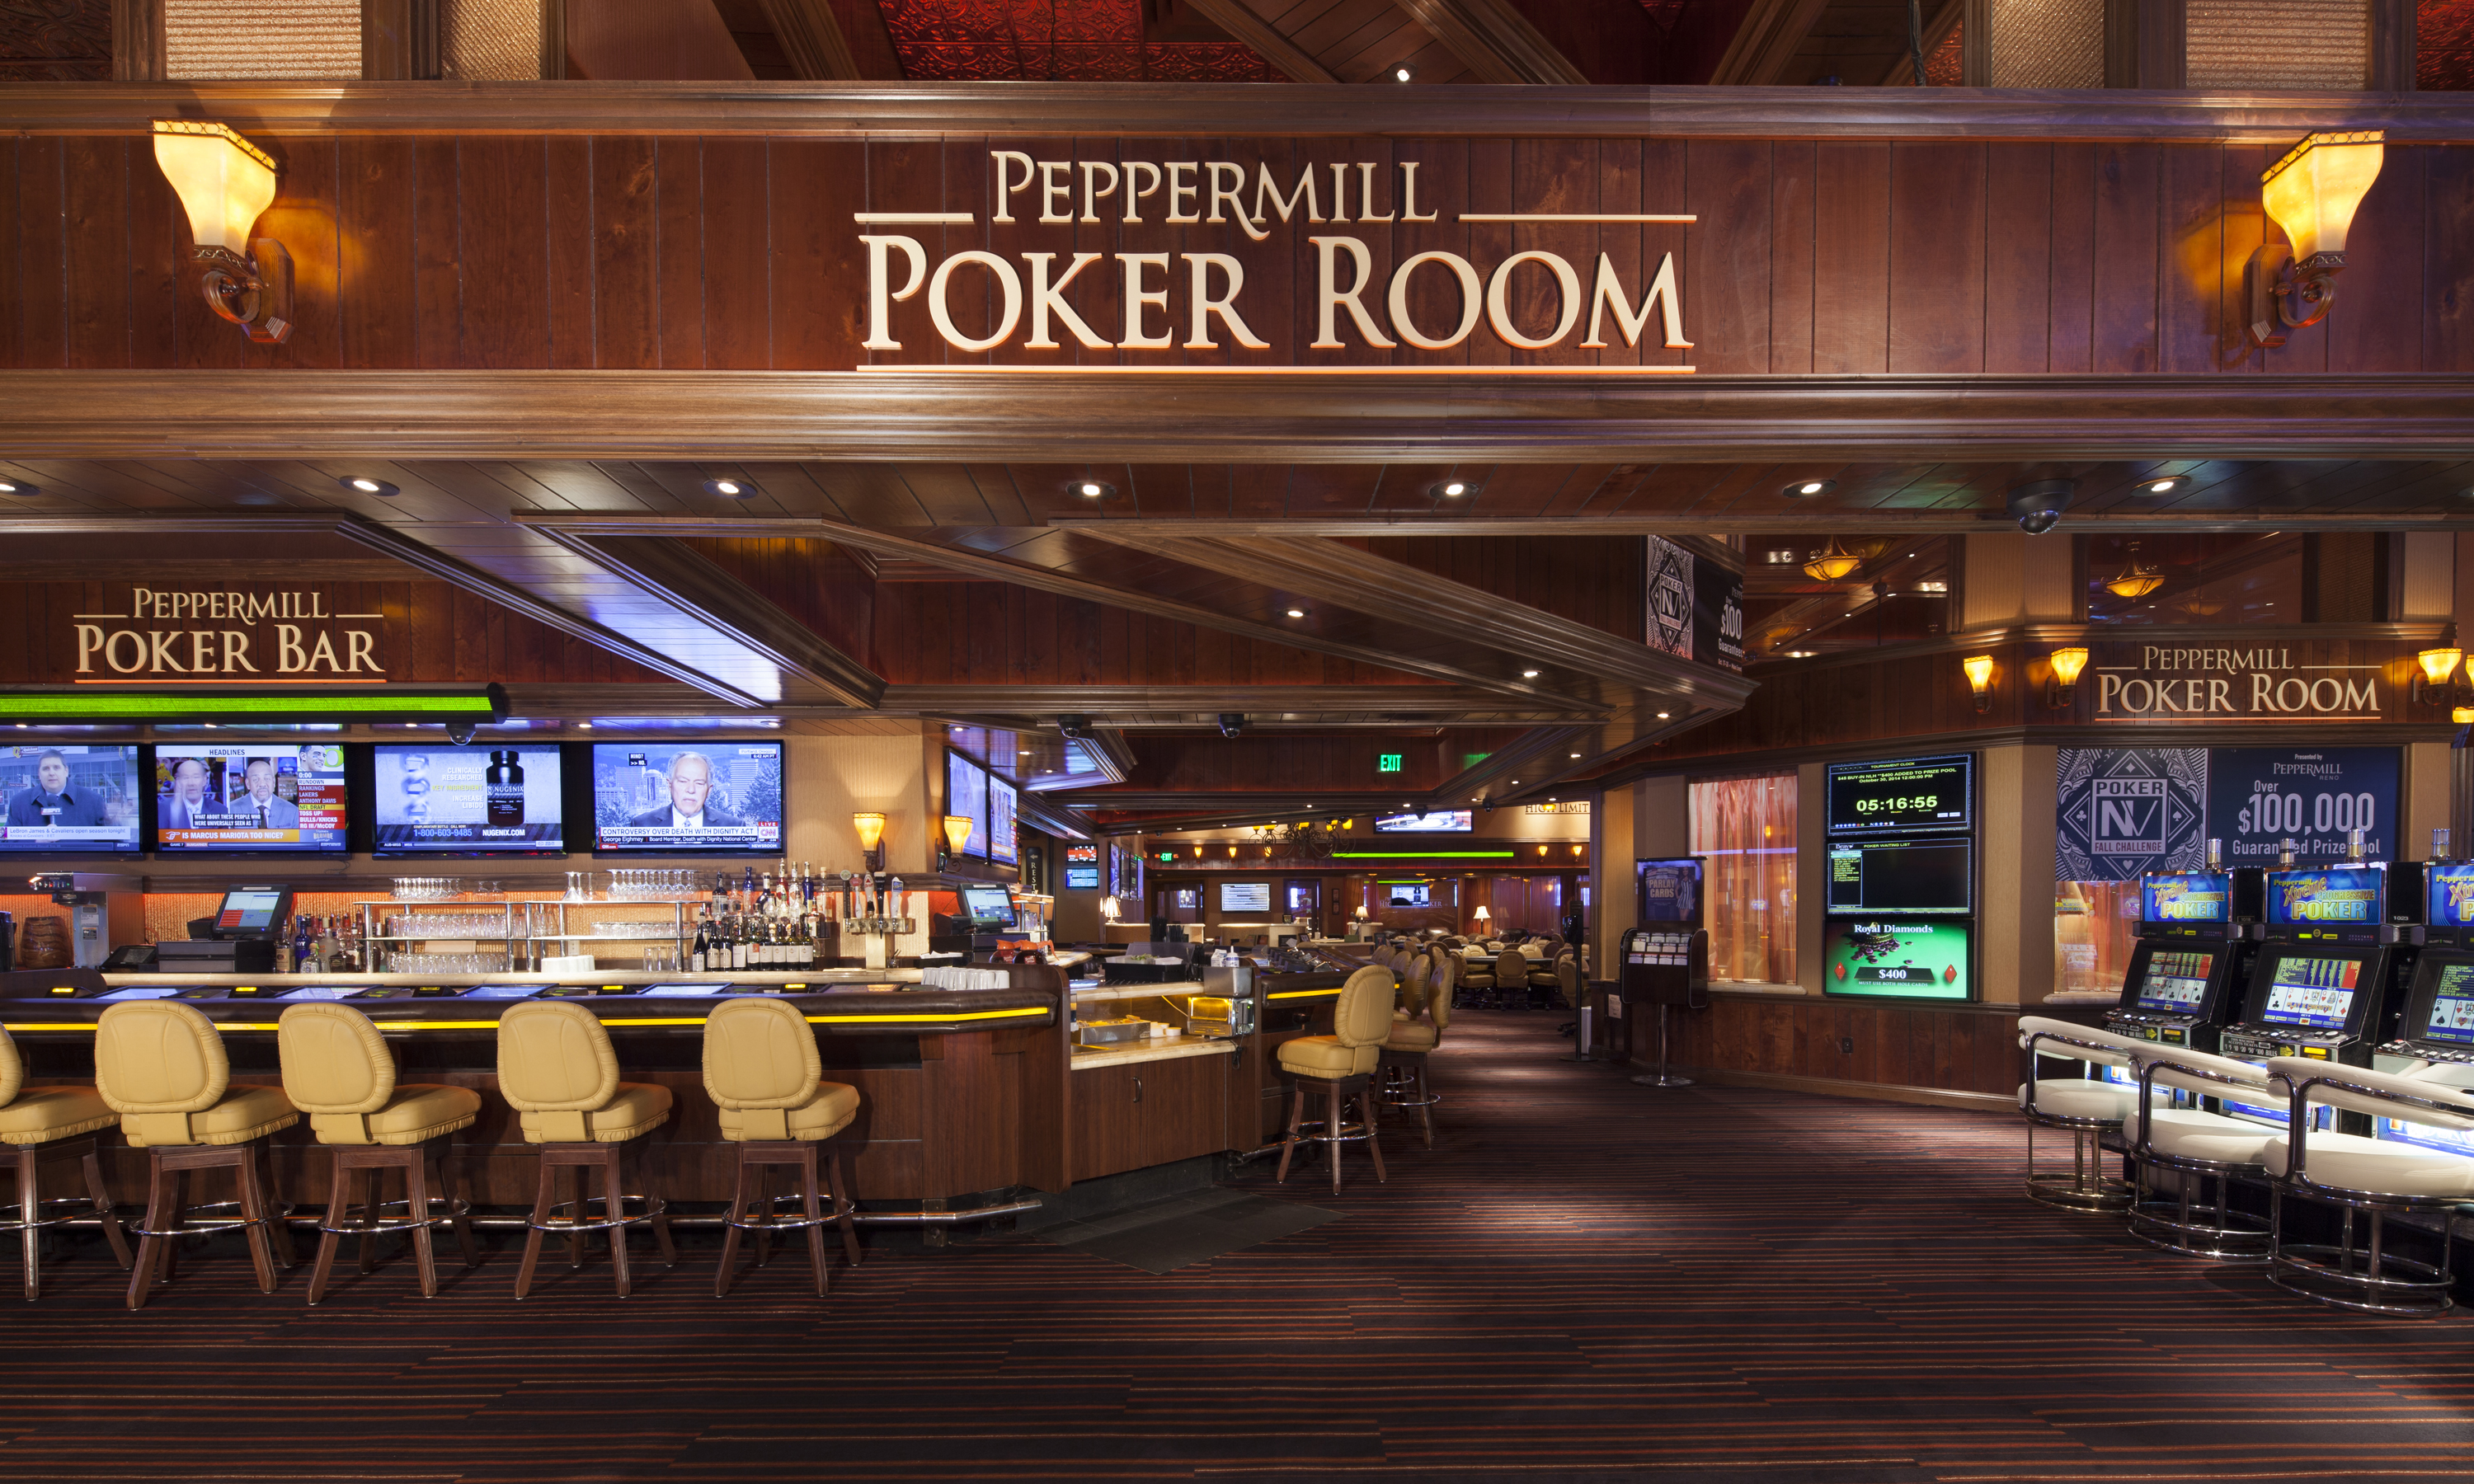 Tuscany villa suite peppermill resort hotel reno - Luxury Poker Room Peppermill Poker Reno